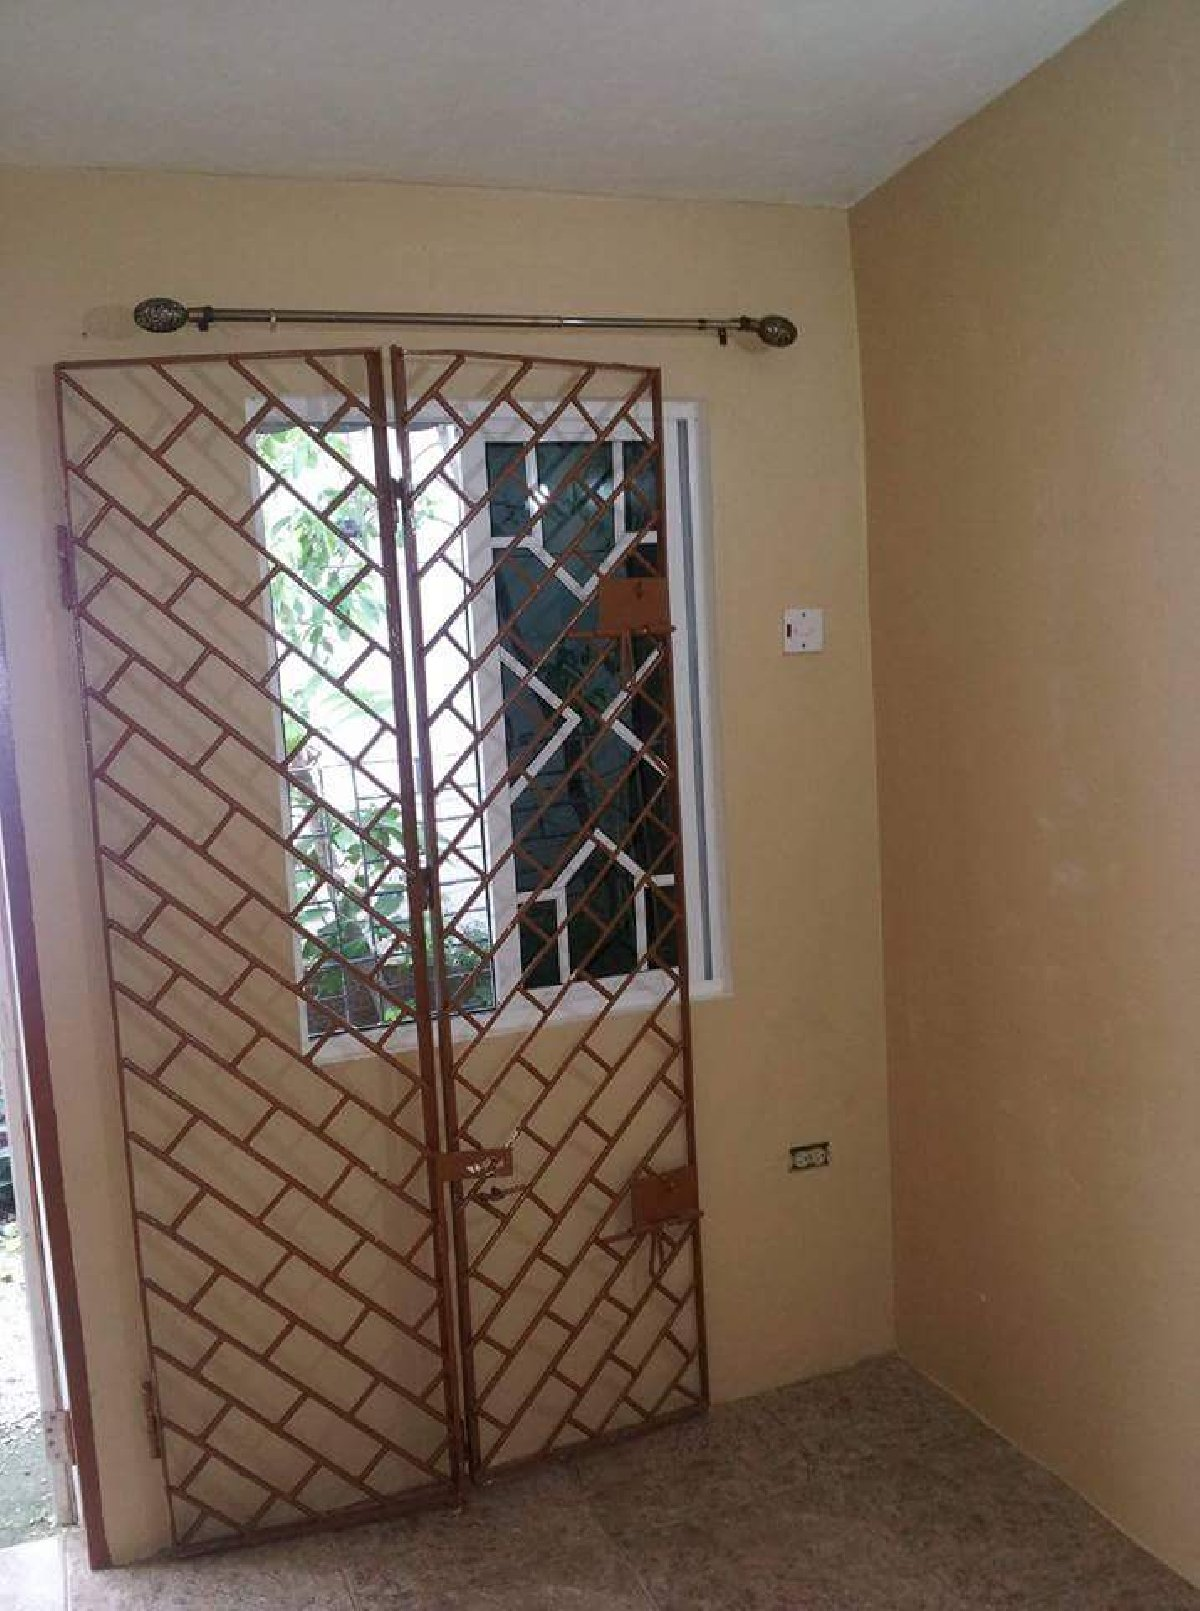 1 Bedroom Apartment For Rent Own Conveniences In Fairview